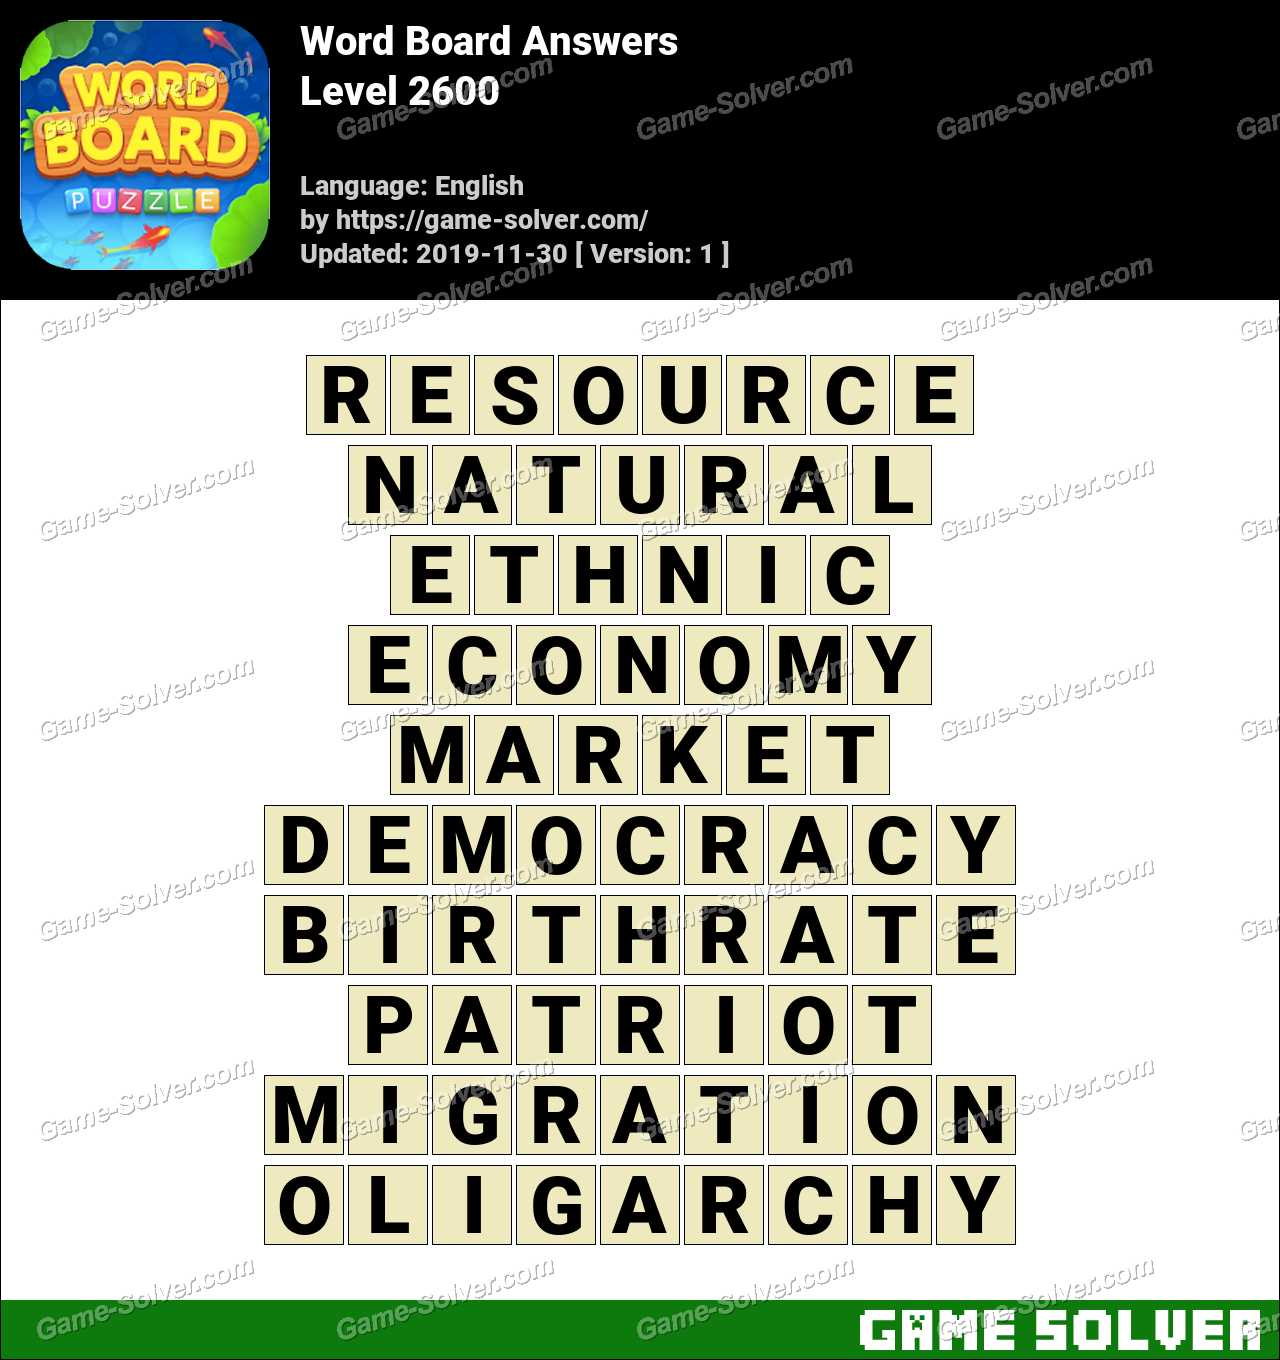 Word Board Level 2600 Answers